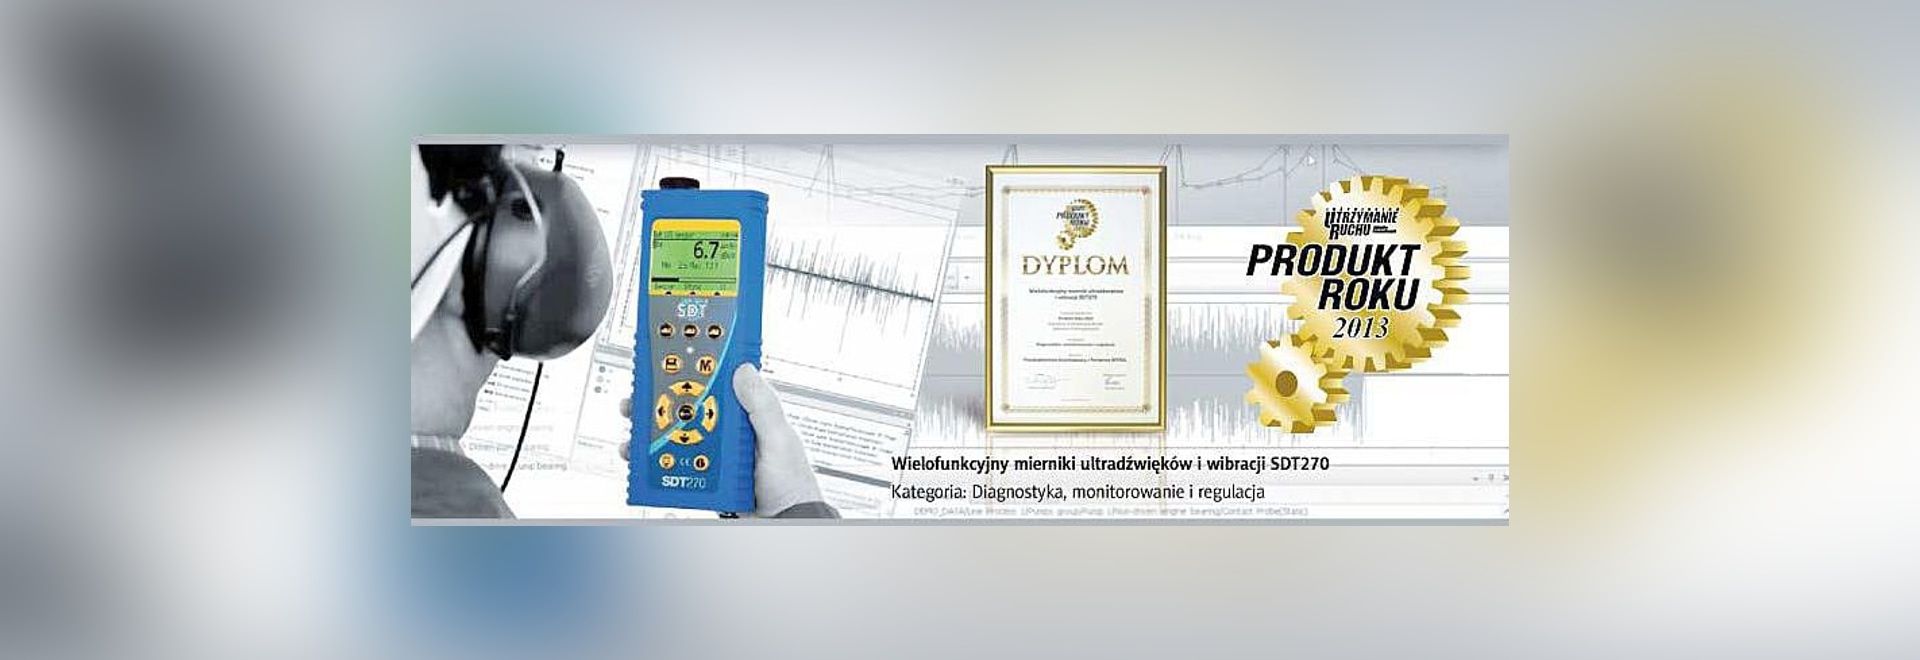 SDT270: Product of the Year in Polen!